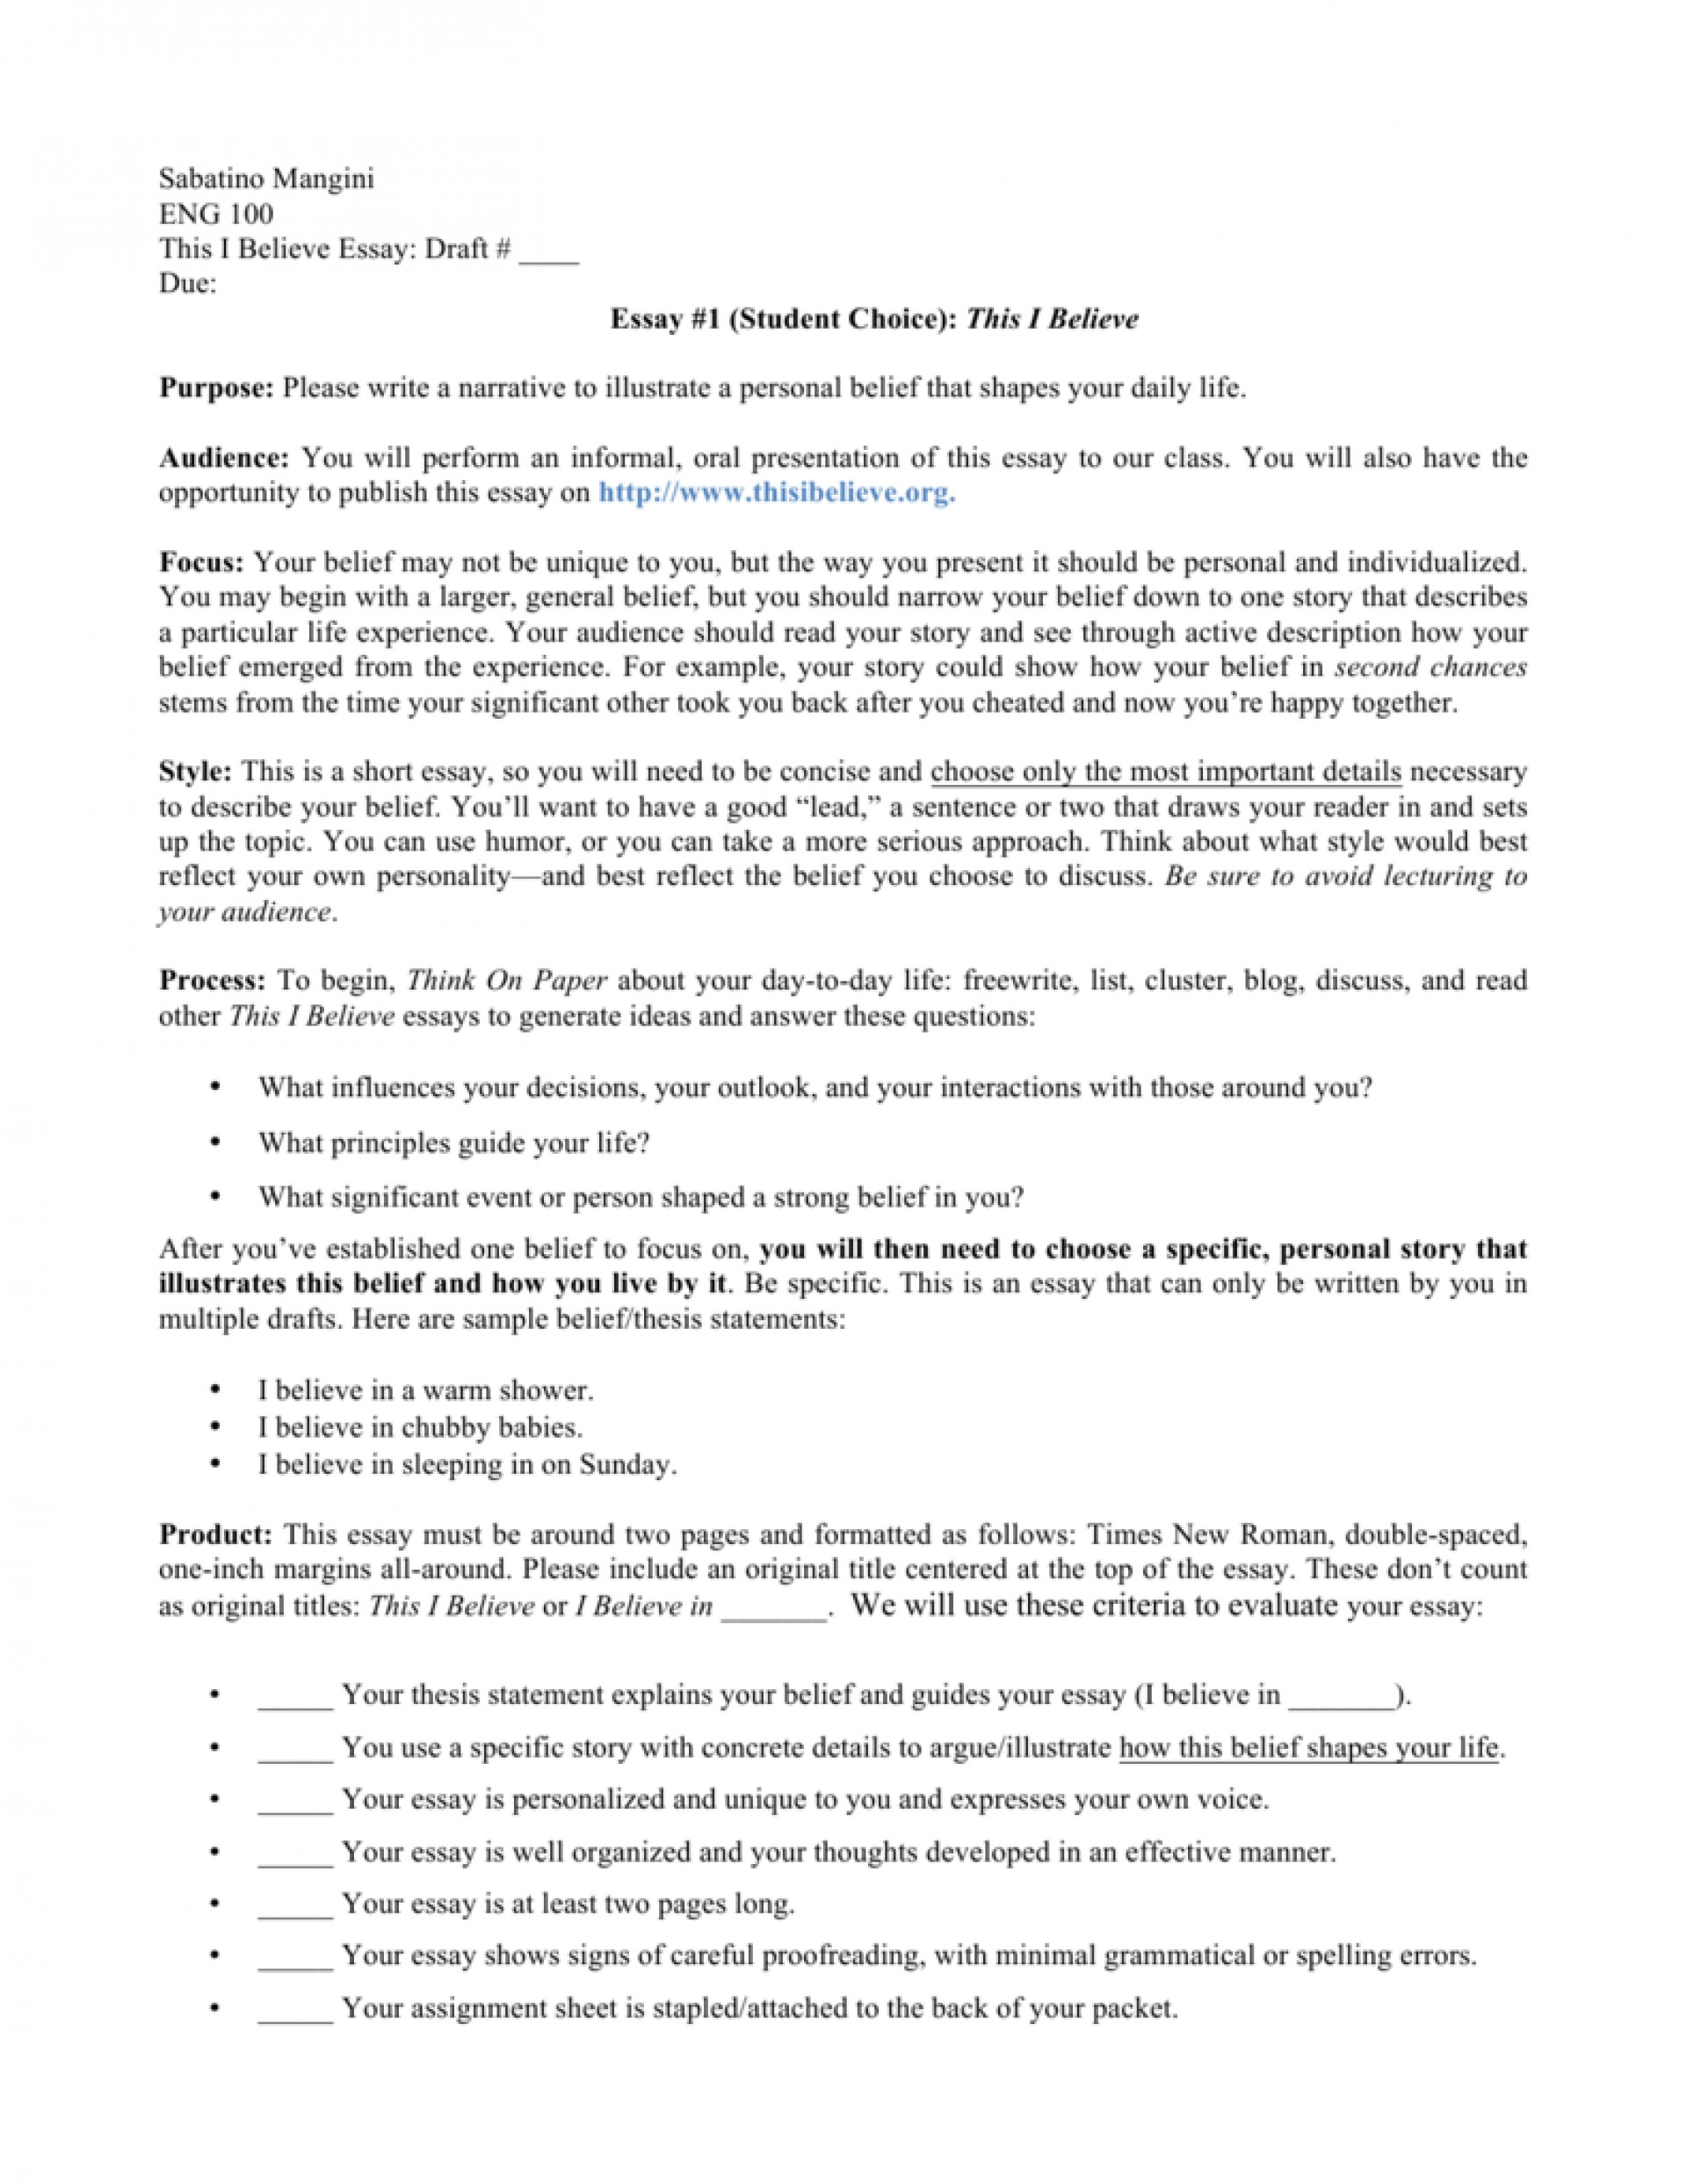 001 This I Believe Essay Example 008807227 1 Singular Rubric Essays Npr Format 1920